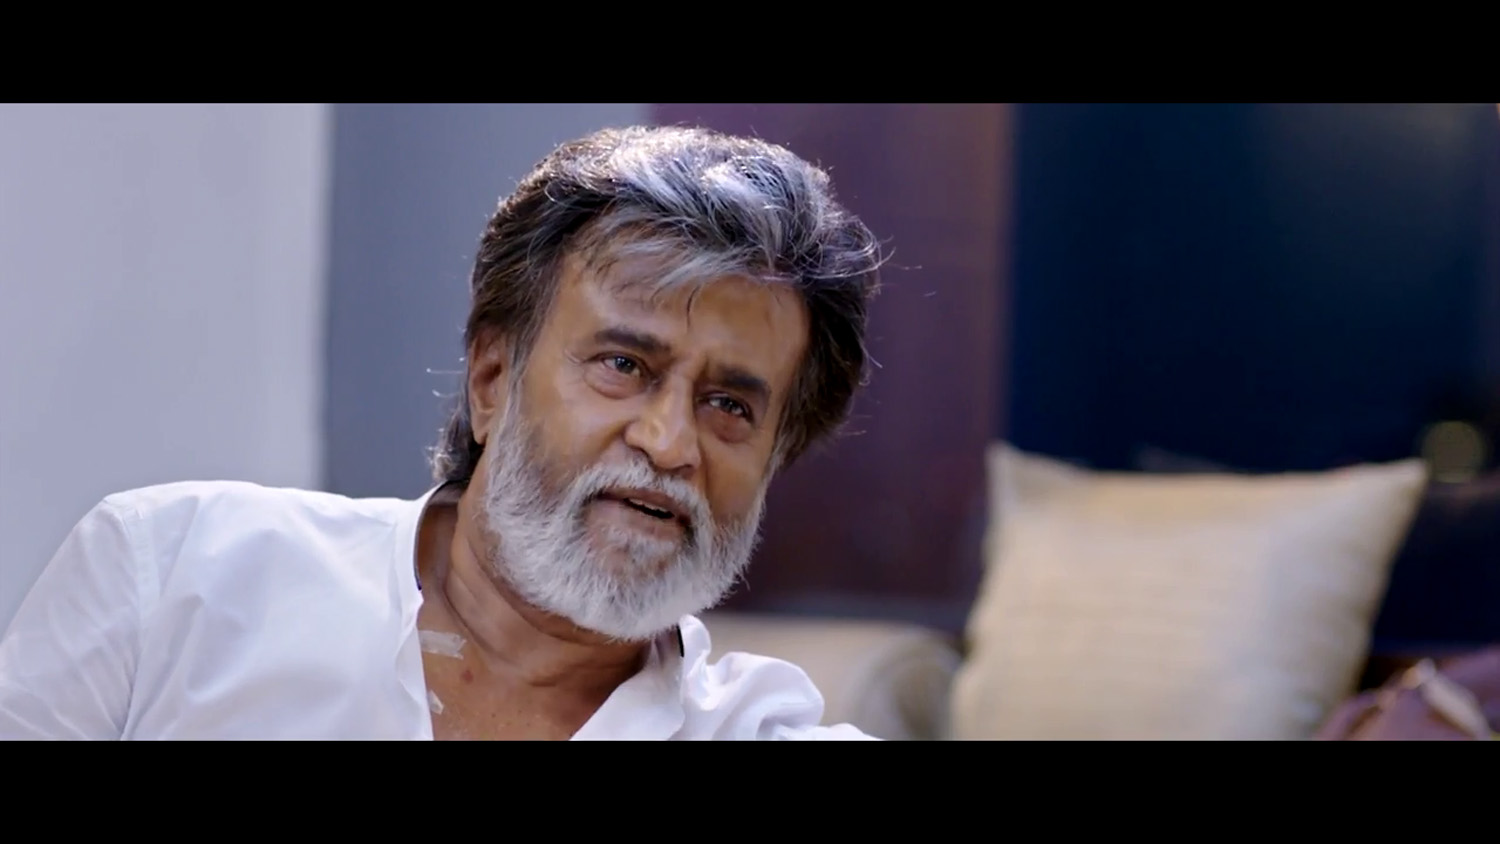 Kabali, Kabali stills, rajinikanth in Kabali, Kabali rajinikanth look hair style, rajinikanth old look, Kabali movie official trailer teaser,